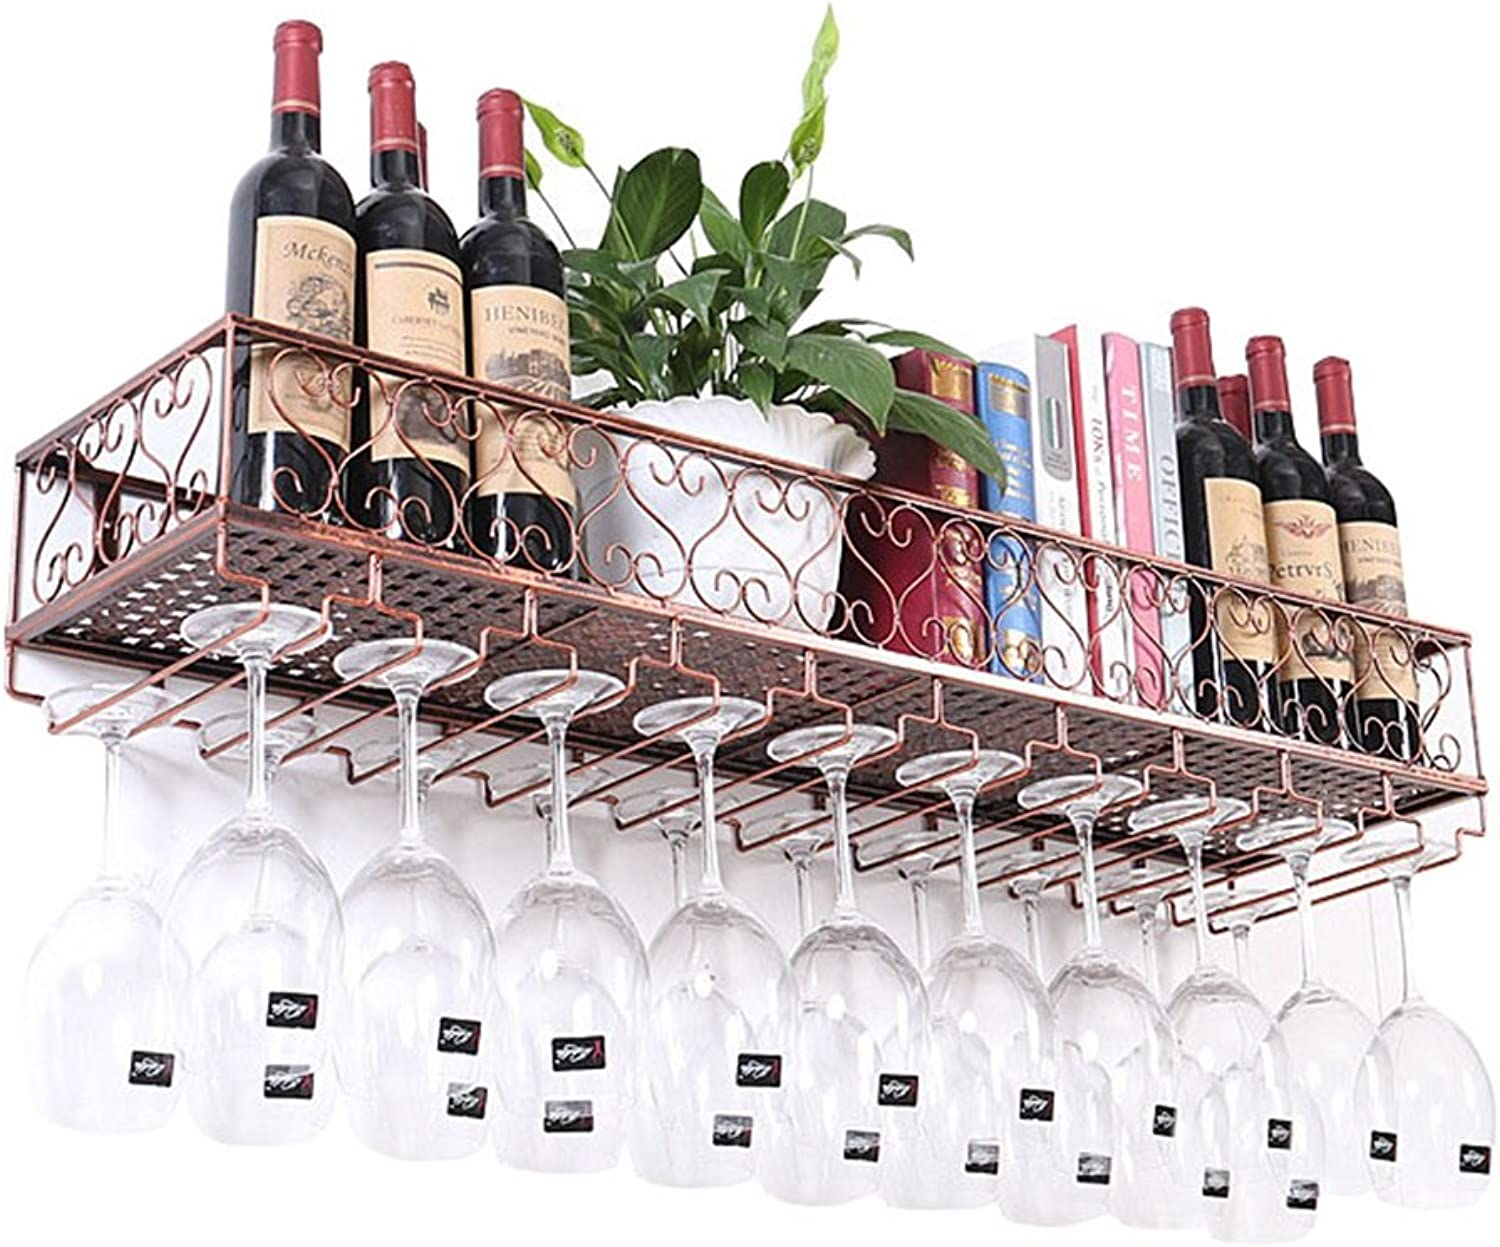 Metal Wine Racks Hanging Wine Glass Holder,Vintage Wine Bottle Holder Rustic Wall Mounted Wine Holder Wine Cooler,Wall Shelf Storage Organizer Rack, Bronze (color   60×25×17CM)